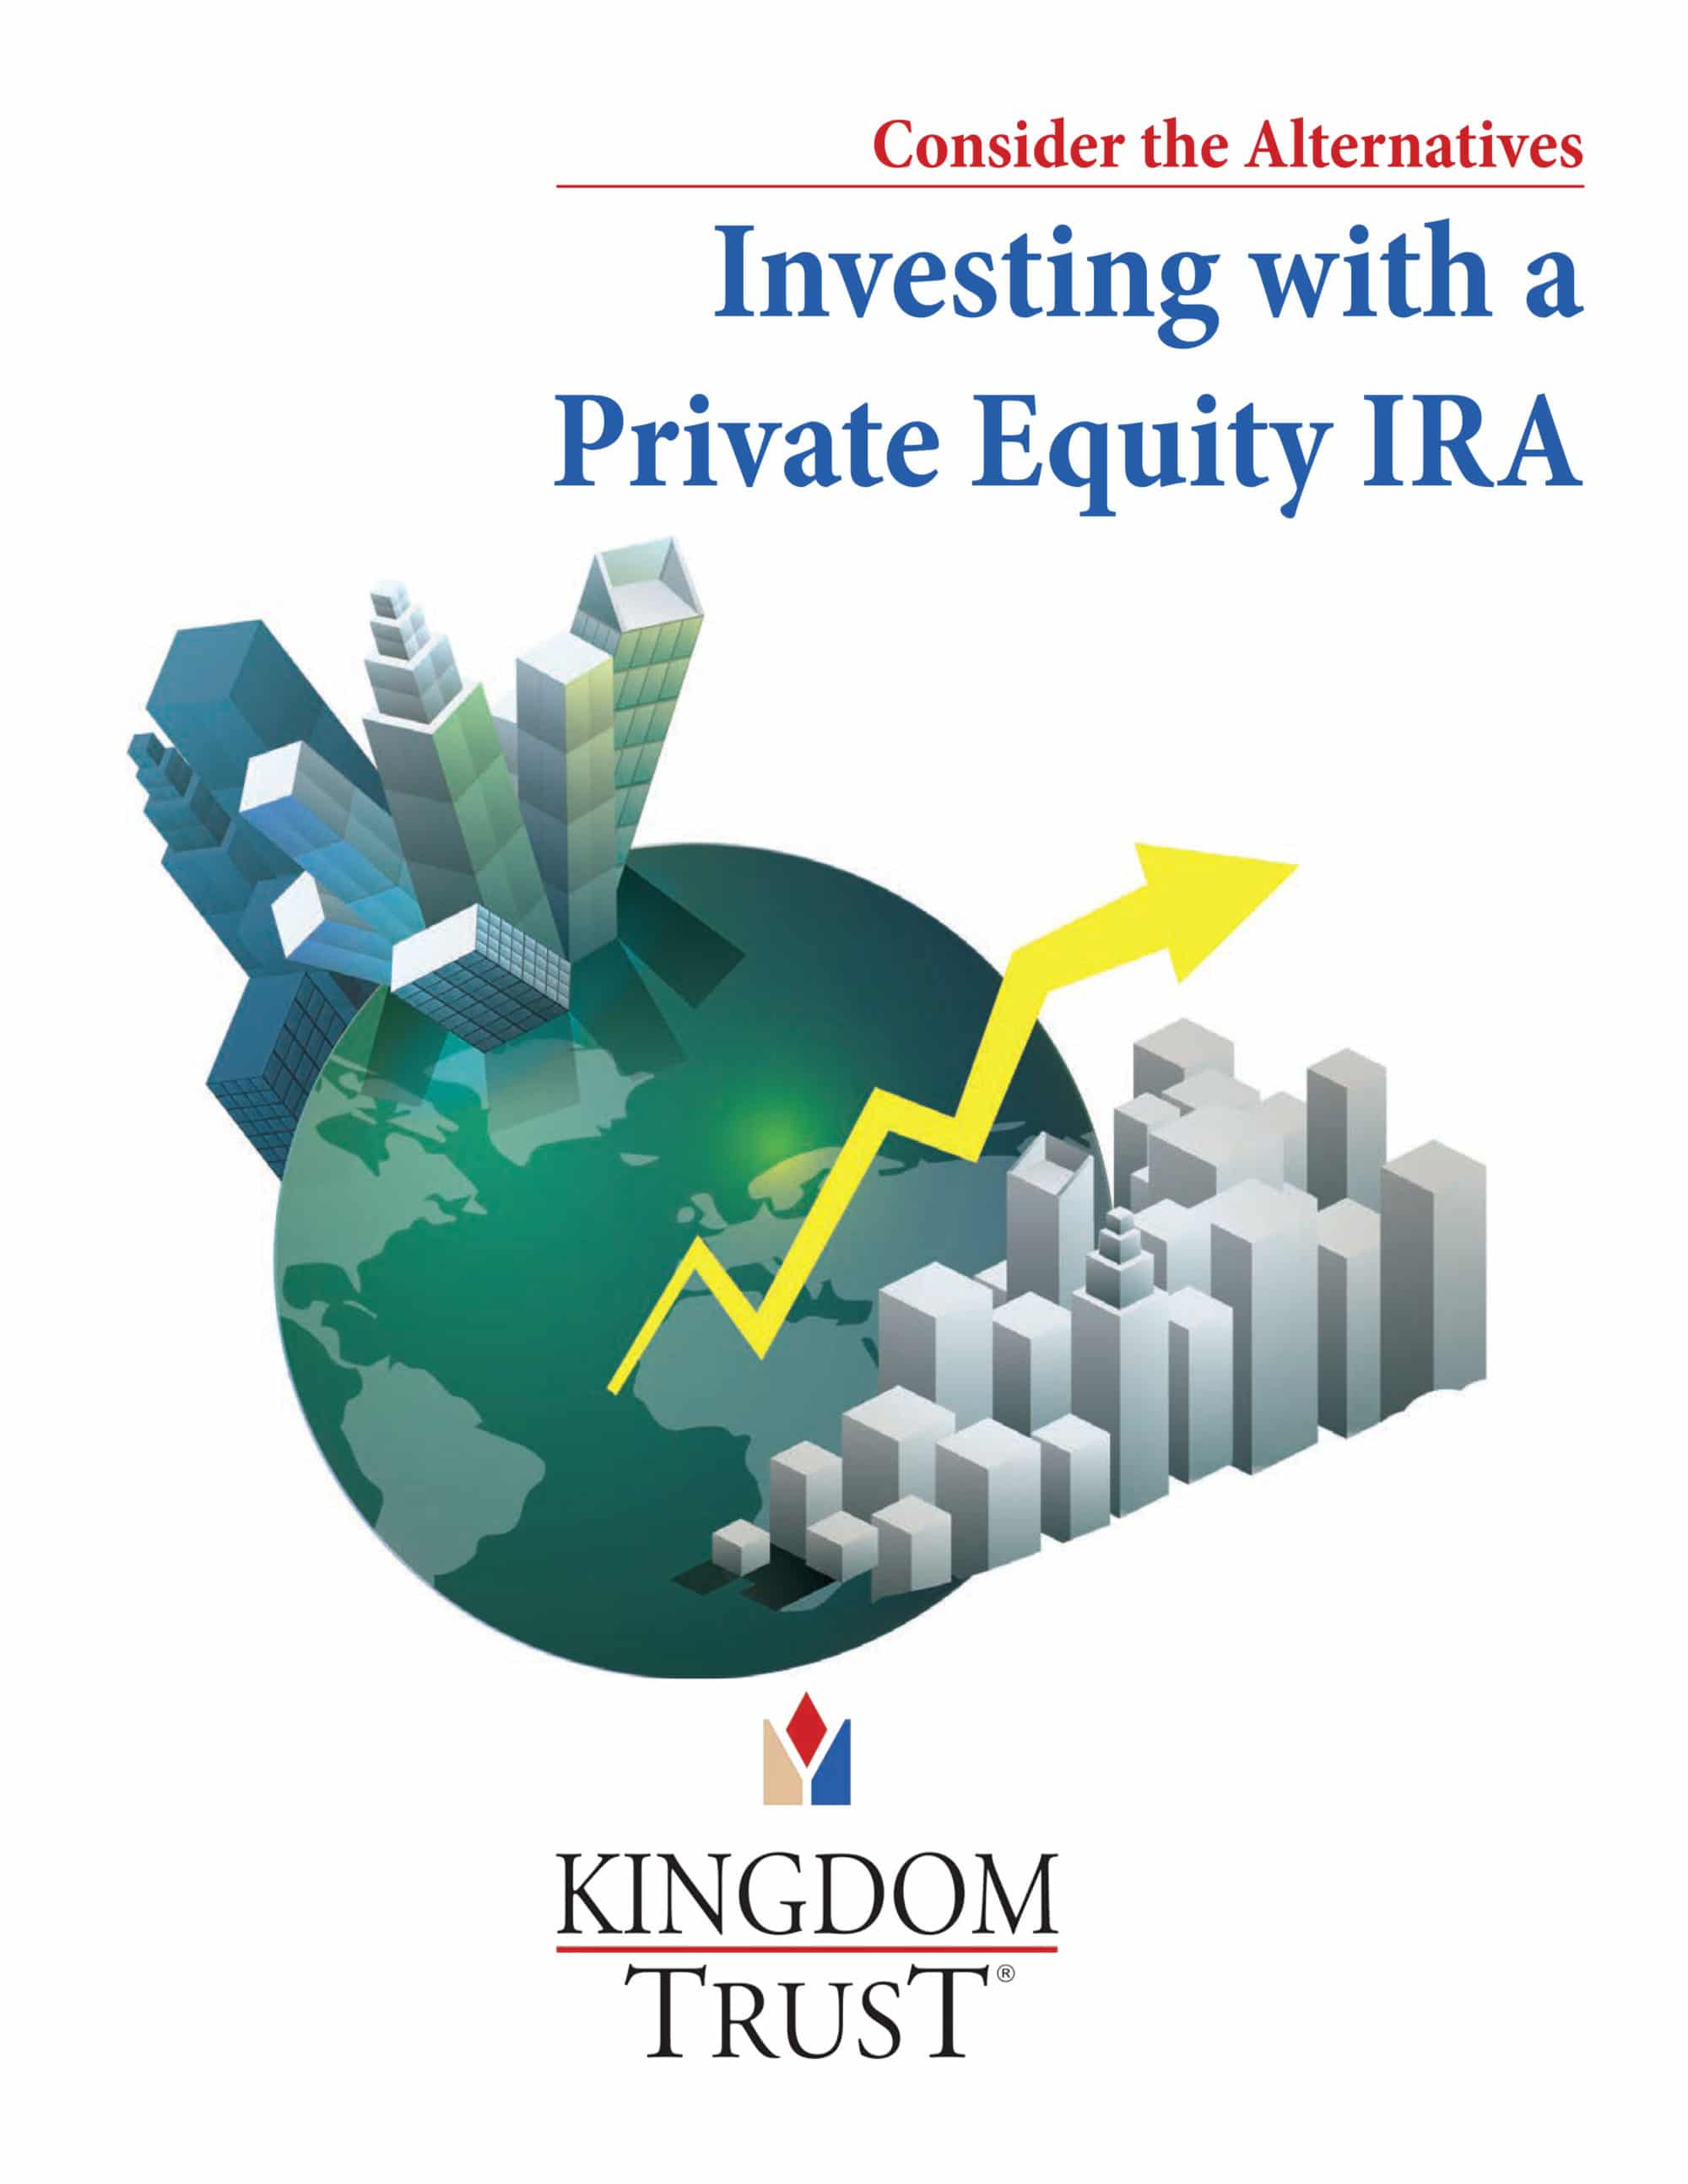 Investing with a Private Equity IRA